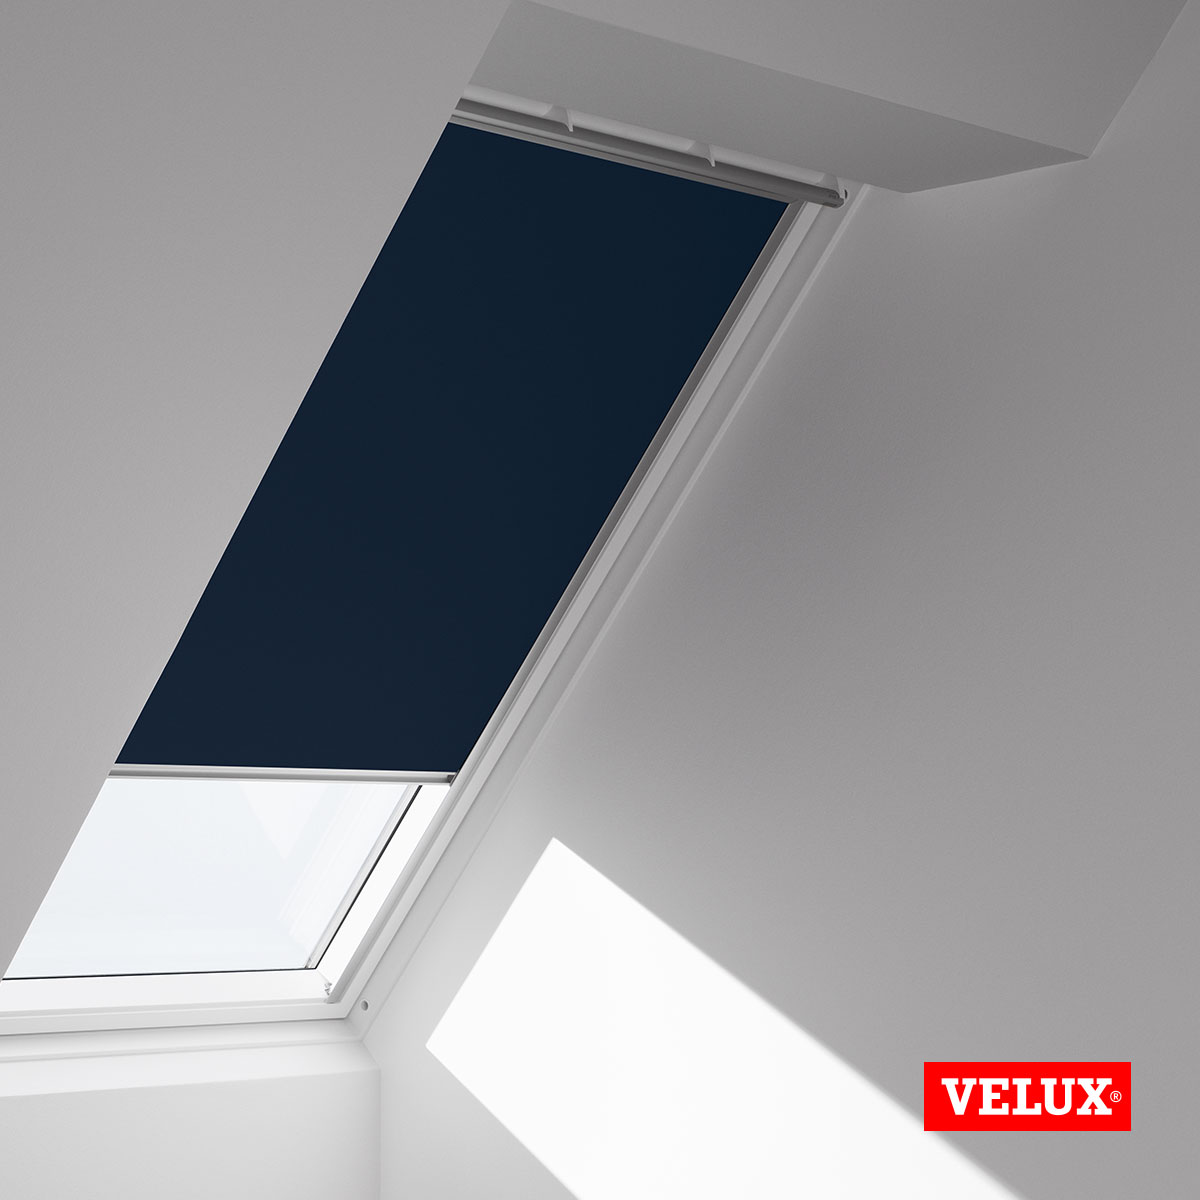 Genuine velux blackout blinds match your velux skylight for Velux window shades